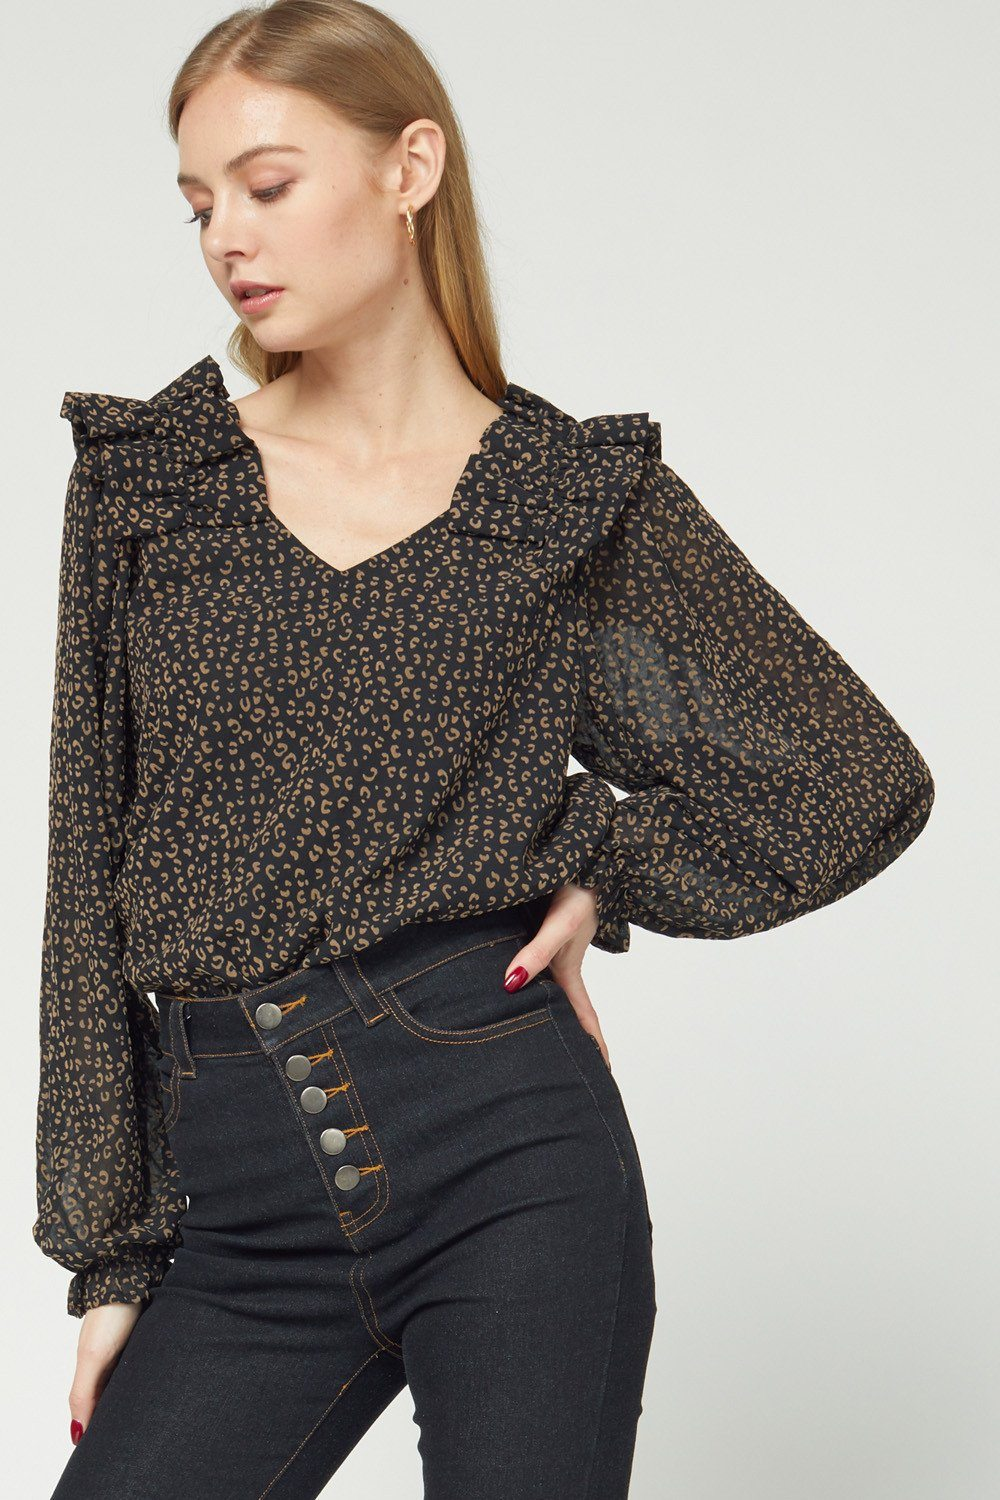 Frill and Leopard Top Black - Caroline Hill